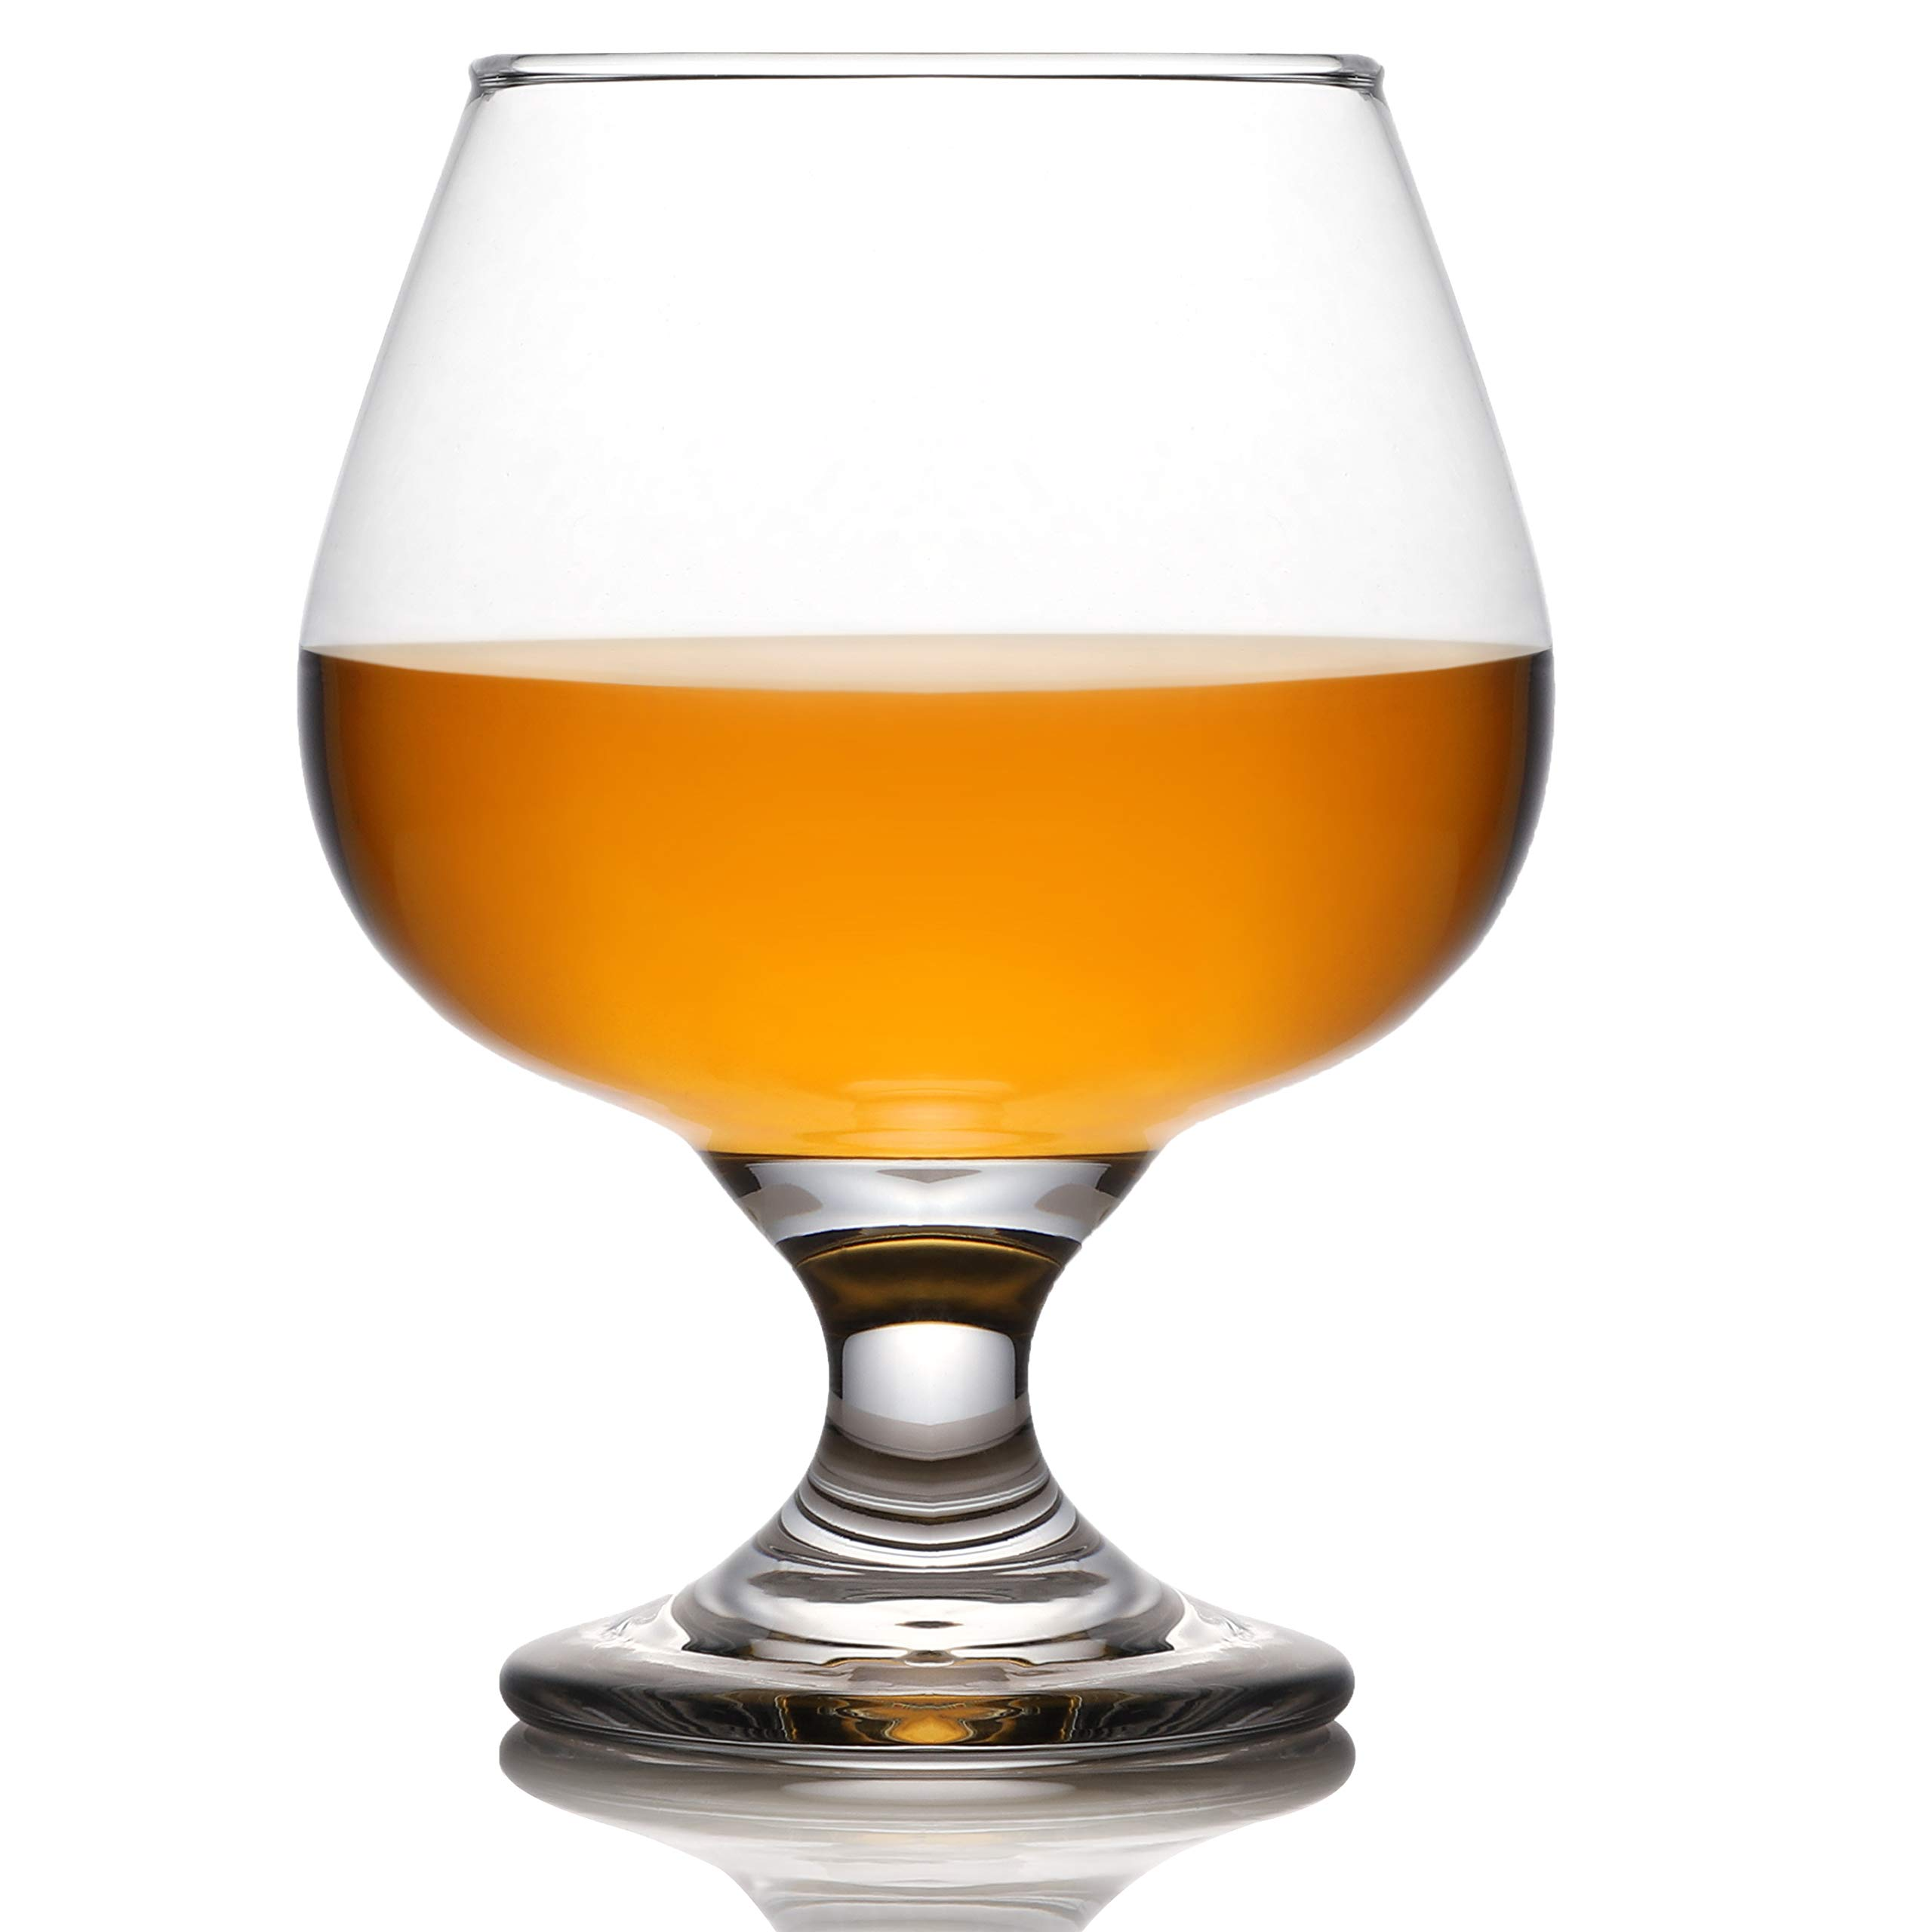 Juvale Cognac Glasses (Set of 4) - 13 Ounce Brandy Snifters for Bourbon and Whiskey by Juvale